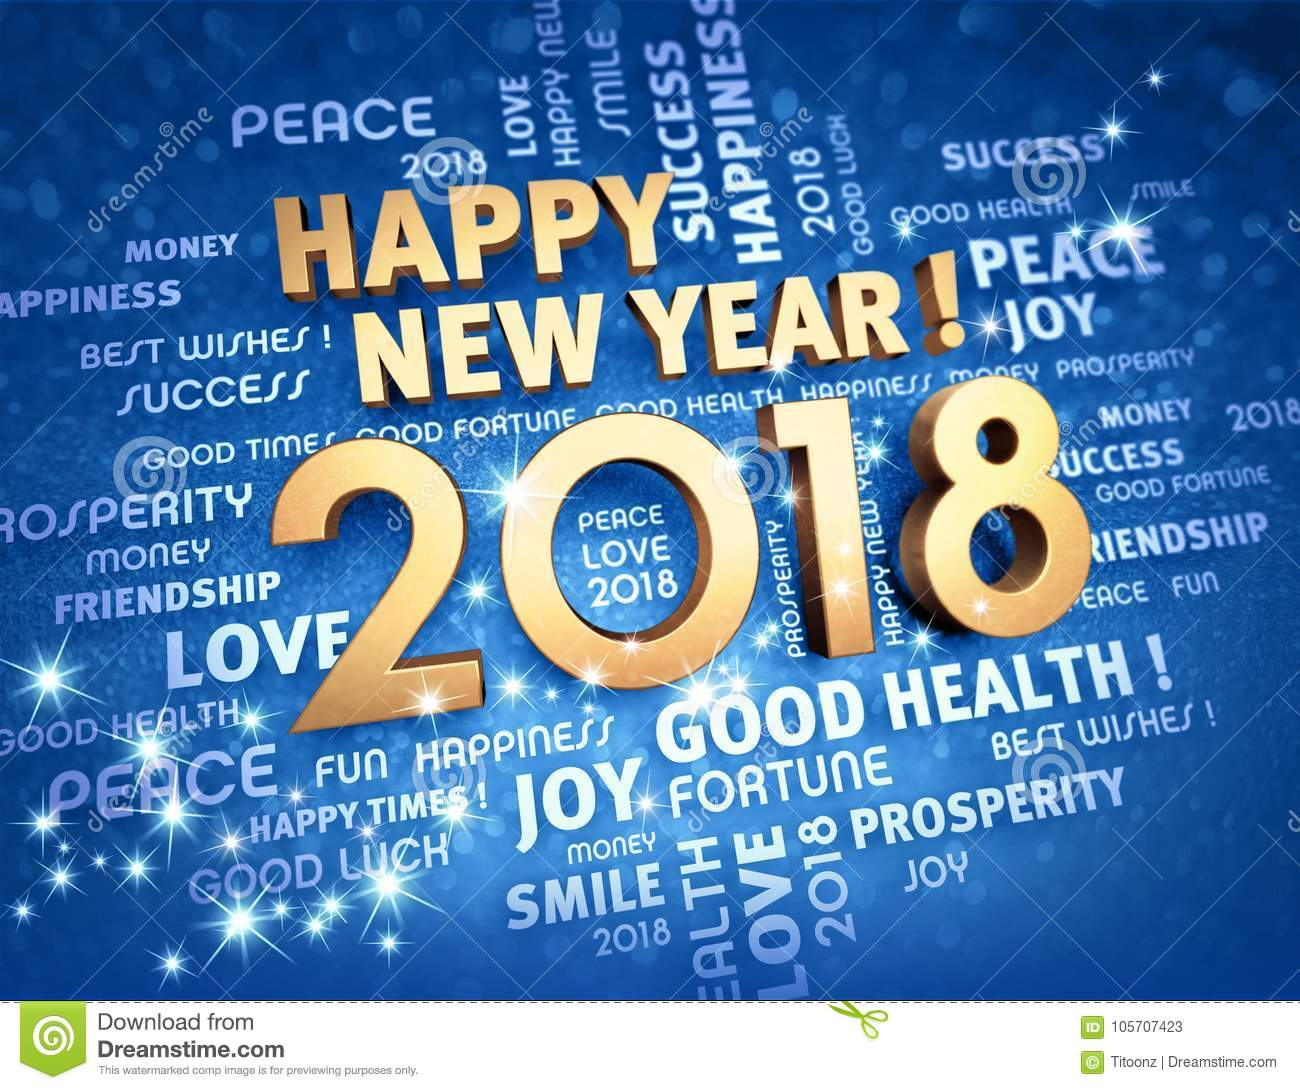 Happy new year 2018 greeting card stock illustration illustration download comp m4hsunfo